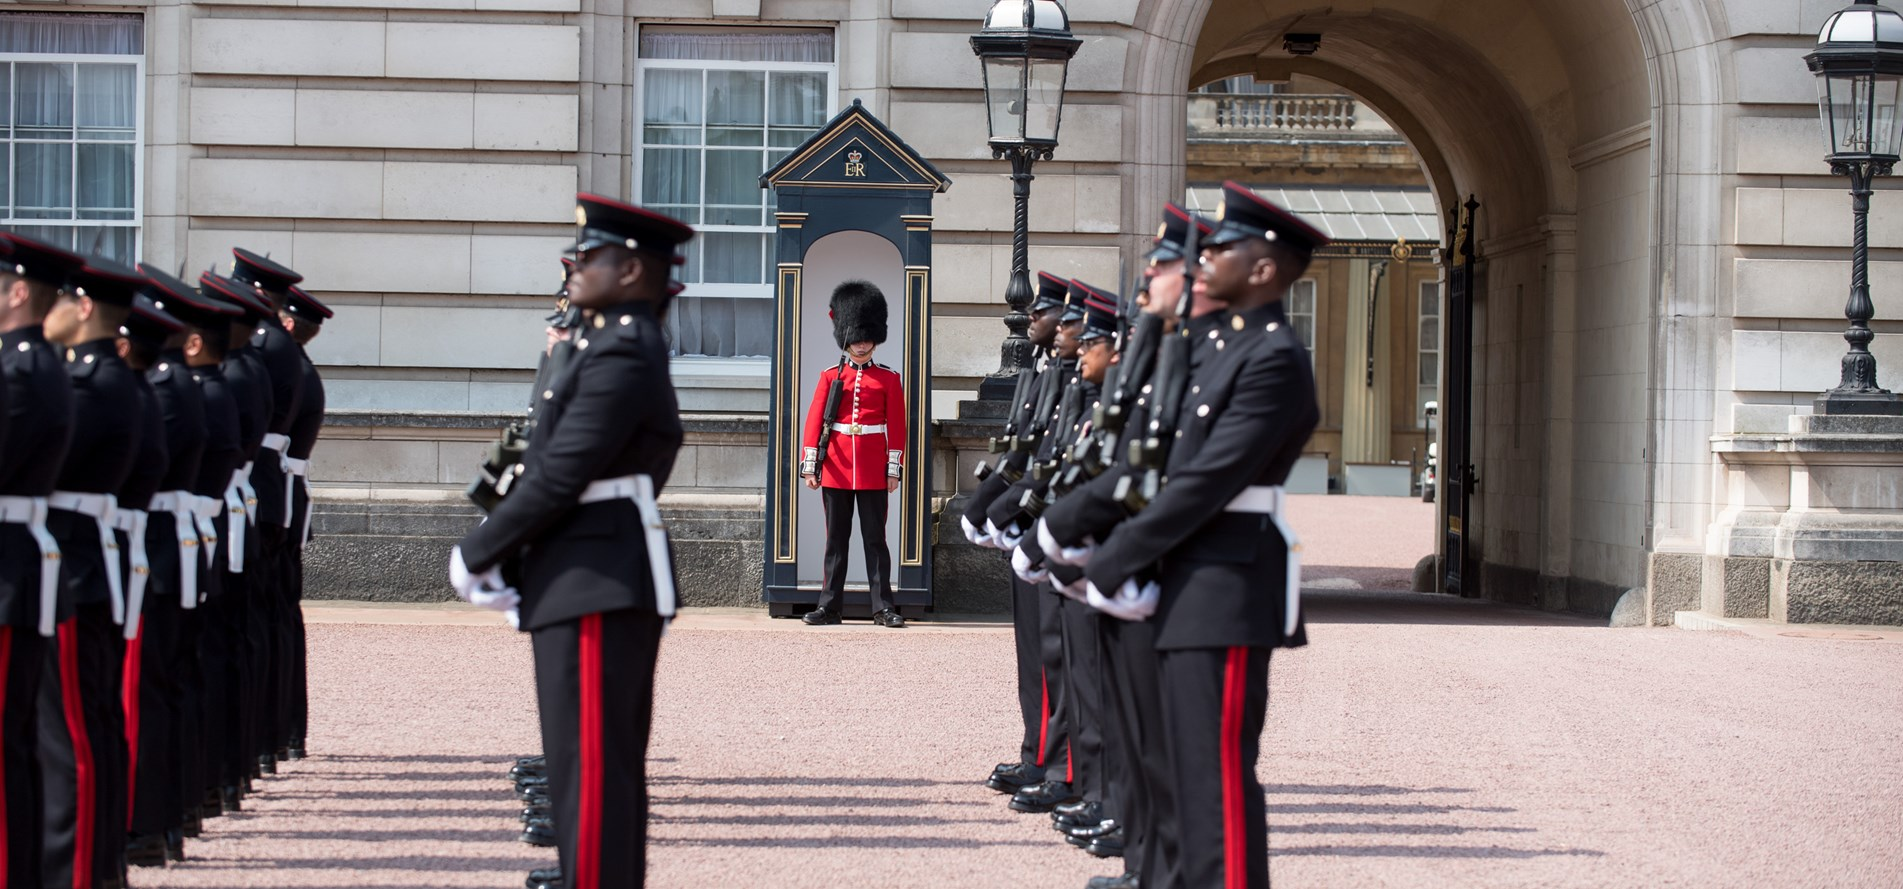 APOLOND-2018-128-0329-3 Regt RLC Mount The Queens Guard.JPG